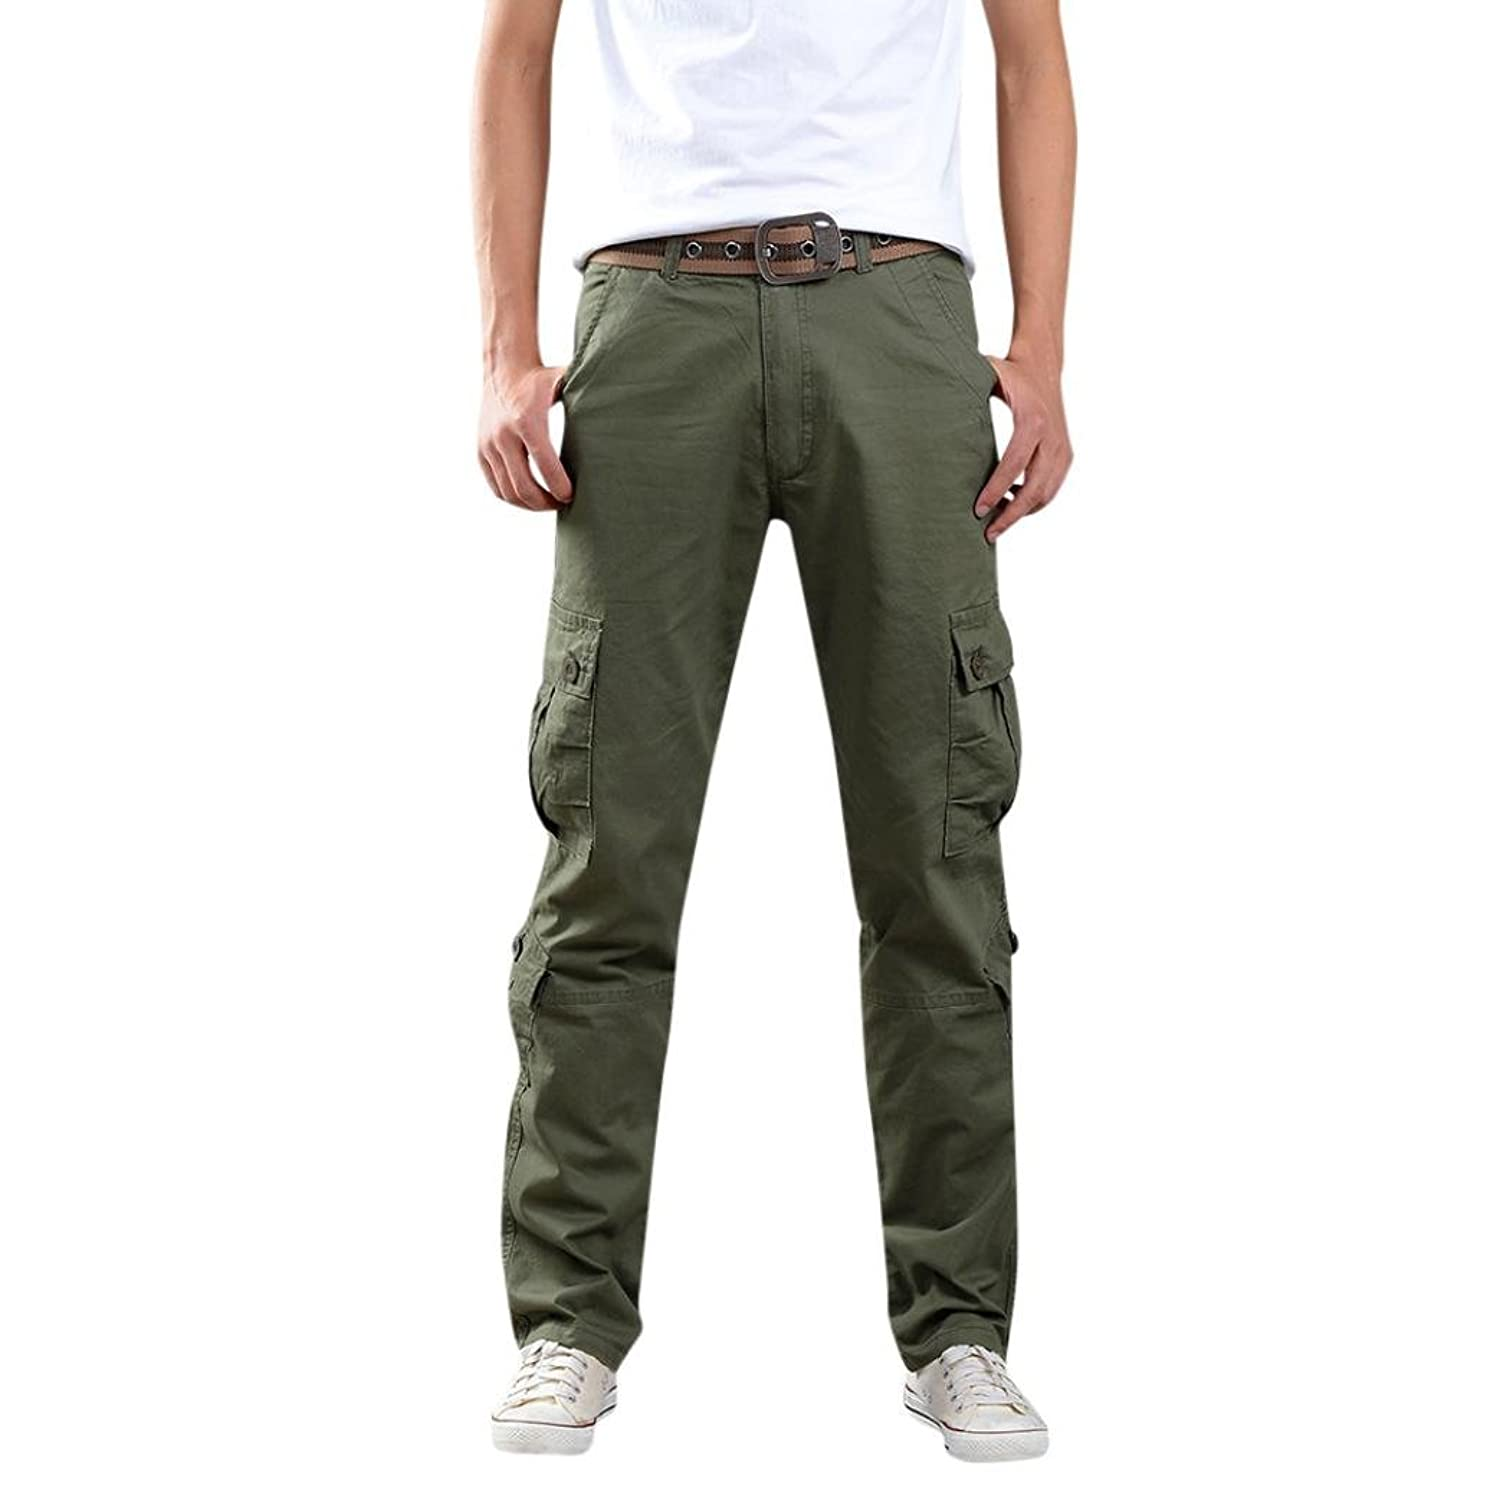 10e77884 ❊Material:Cotton Blend♥♥Men's slim tapered stretchy casual pant men's  outdoor quick dry convertible lightweight hiking fishing zip off cargo work  pant ...